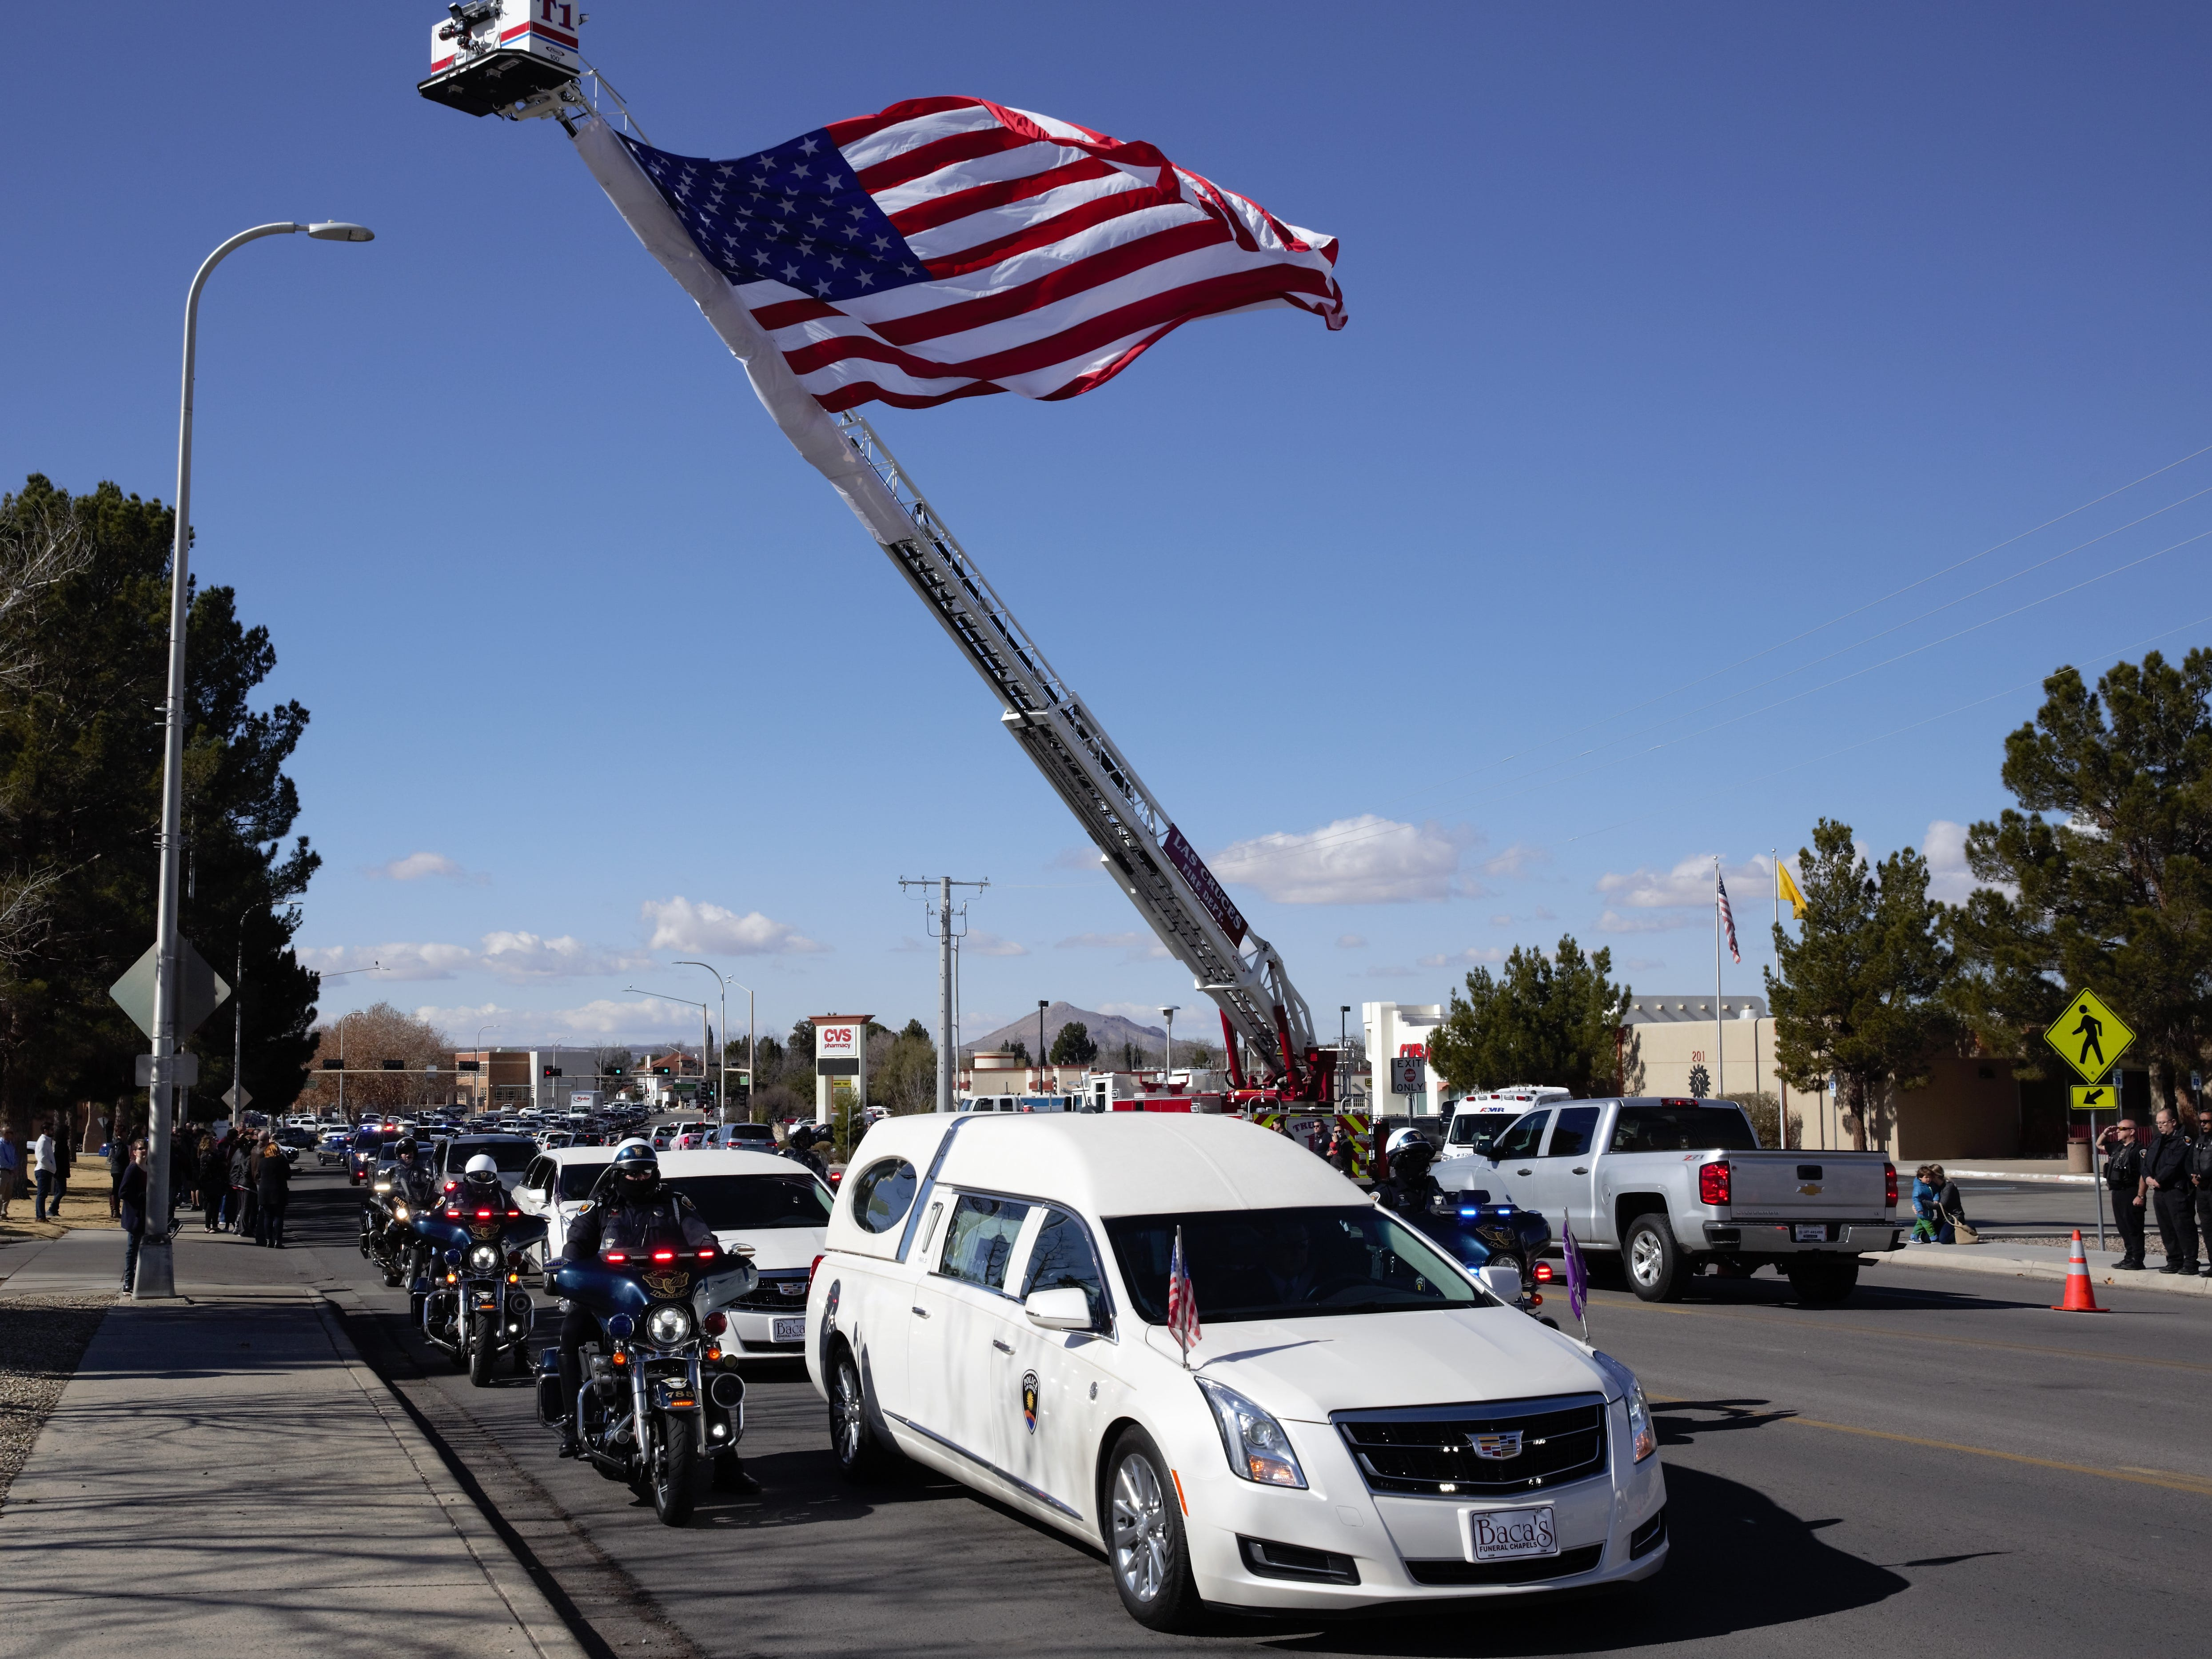 A hearse carrying late Las Cruces Police Department Chief Jaime Montoya pauses during a funeral procession past the main city police and fire stations on Picacho Avenue on Friday, Jan. 11, 2019.